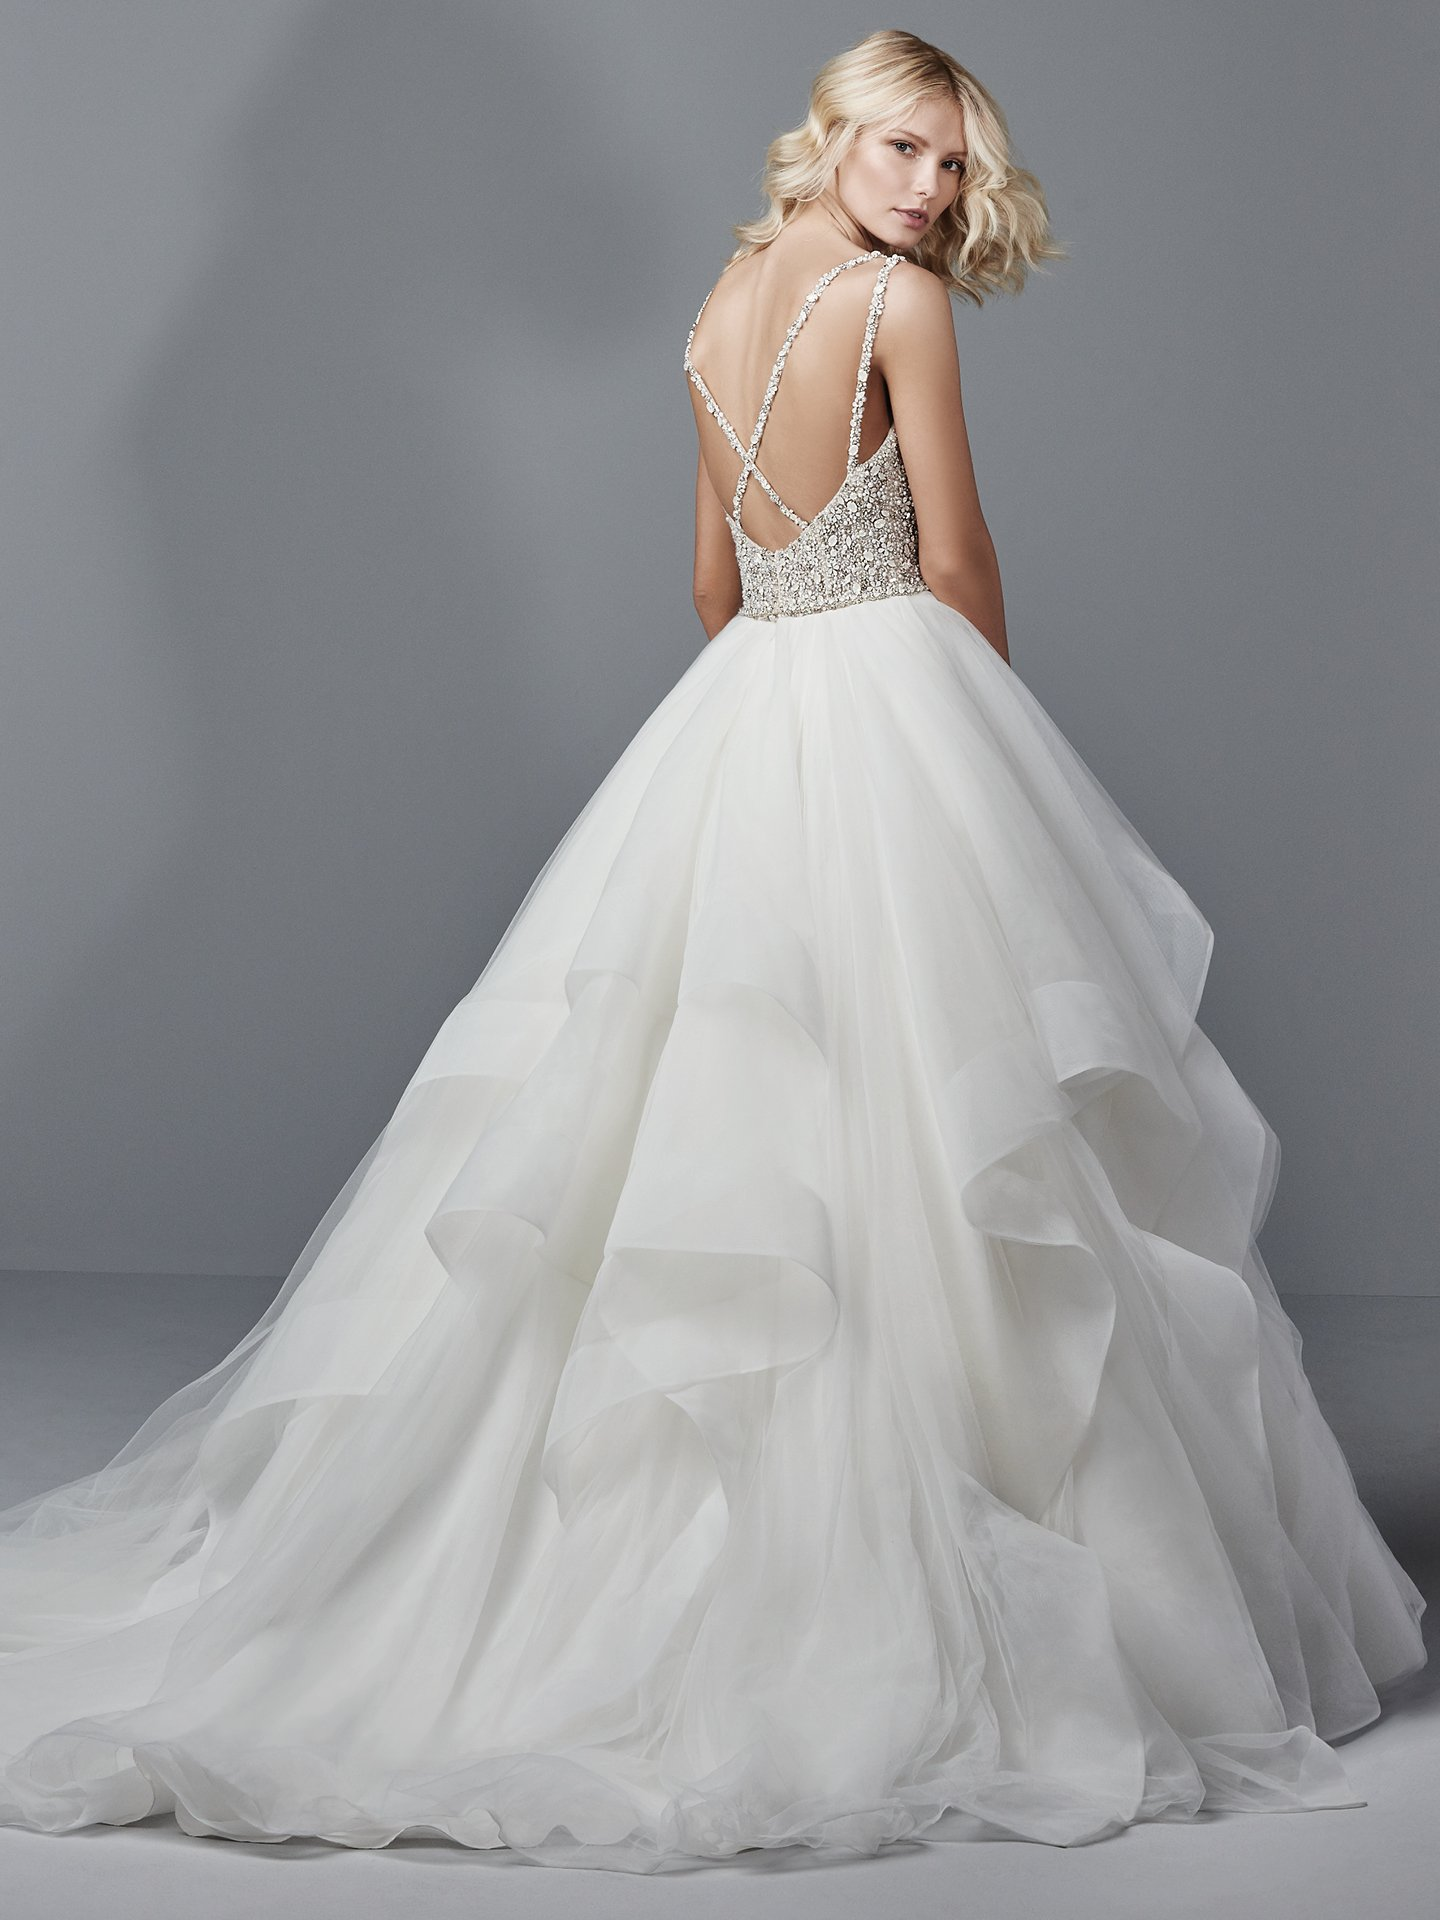 Micah by Sottero and Midgley. This princess wedding dress features a bead and Swarovski crystal-encrusted bodice atop a tiered ballgown skirt of tulle and horsehair. Double spaghetti straps glide from the V-neck into a crisscross pattern over the scoop back. Finished with crystal buttons over zipper closure. Detachable beaded belt sold separately. Princess Ballgowns For Royal Weddings